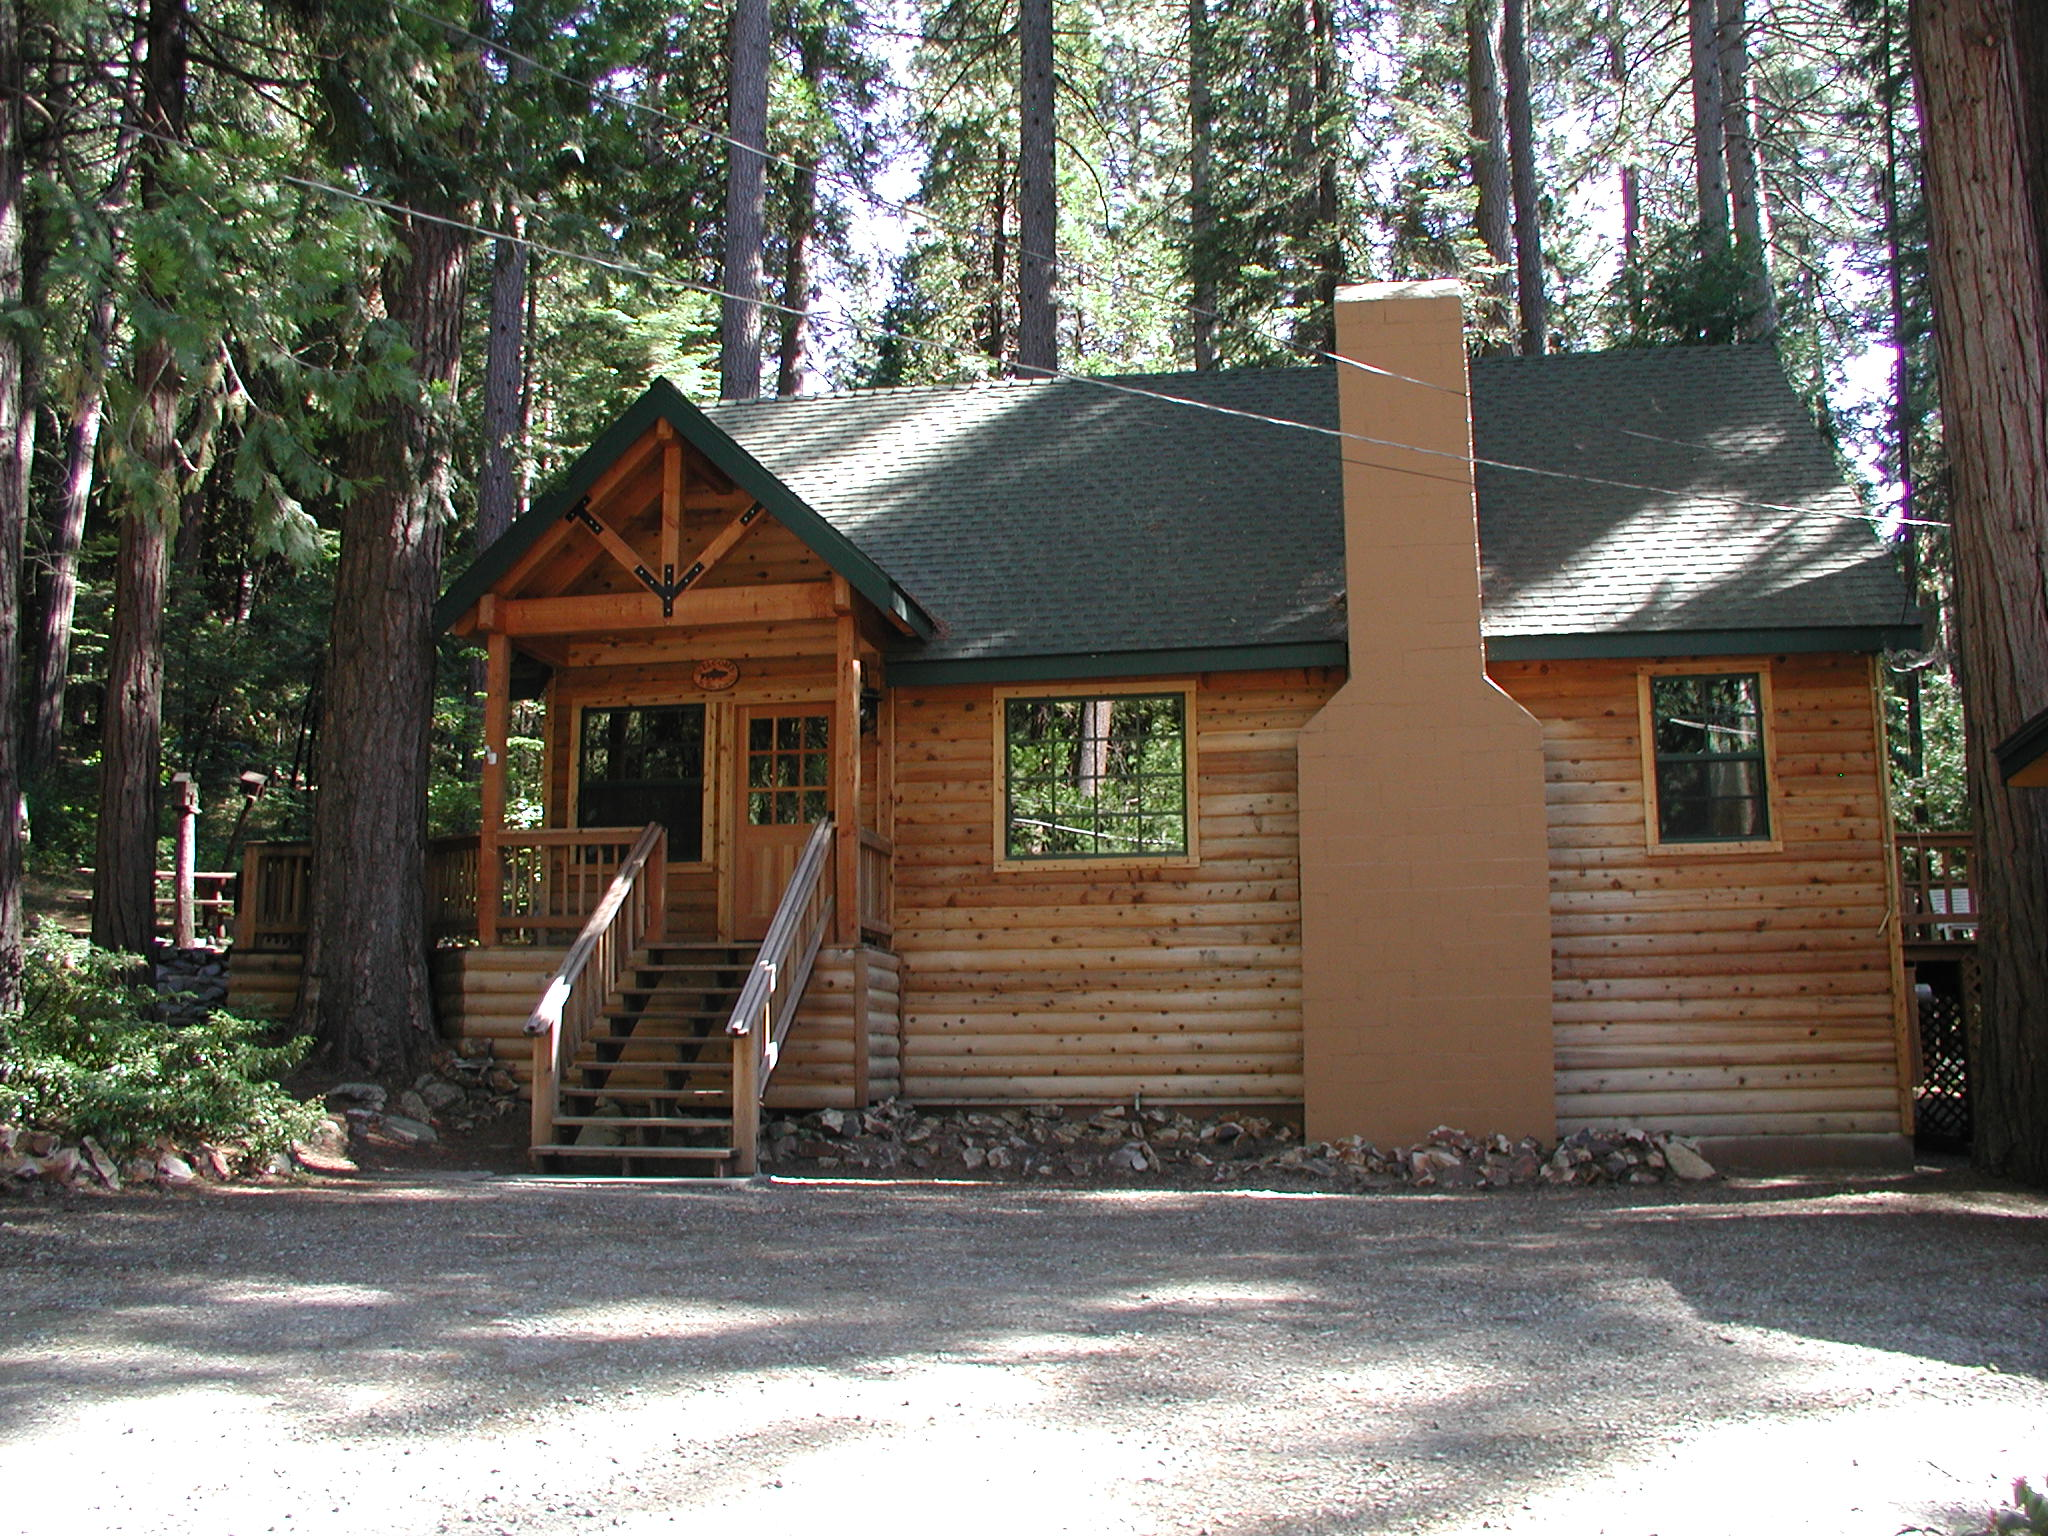 Vacation cabin 19 pinecrest 16733 find rentals for Getaway cottage